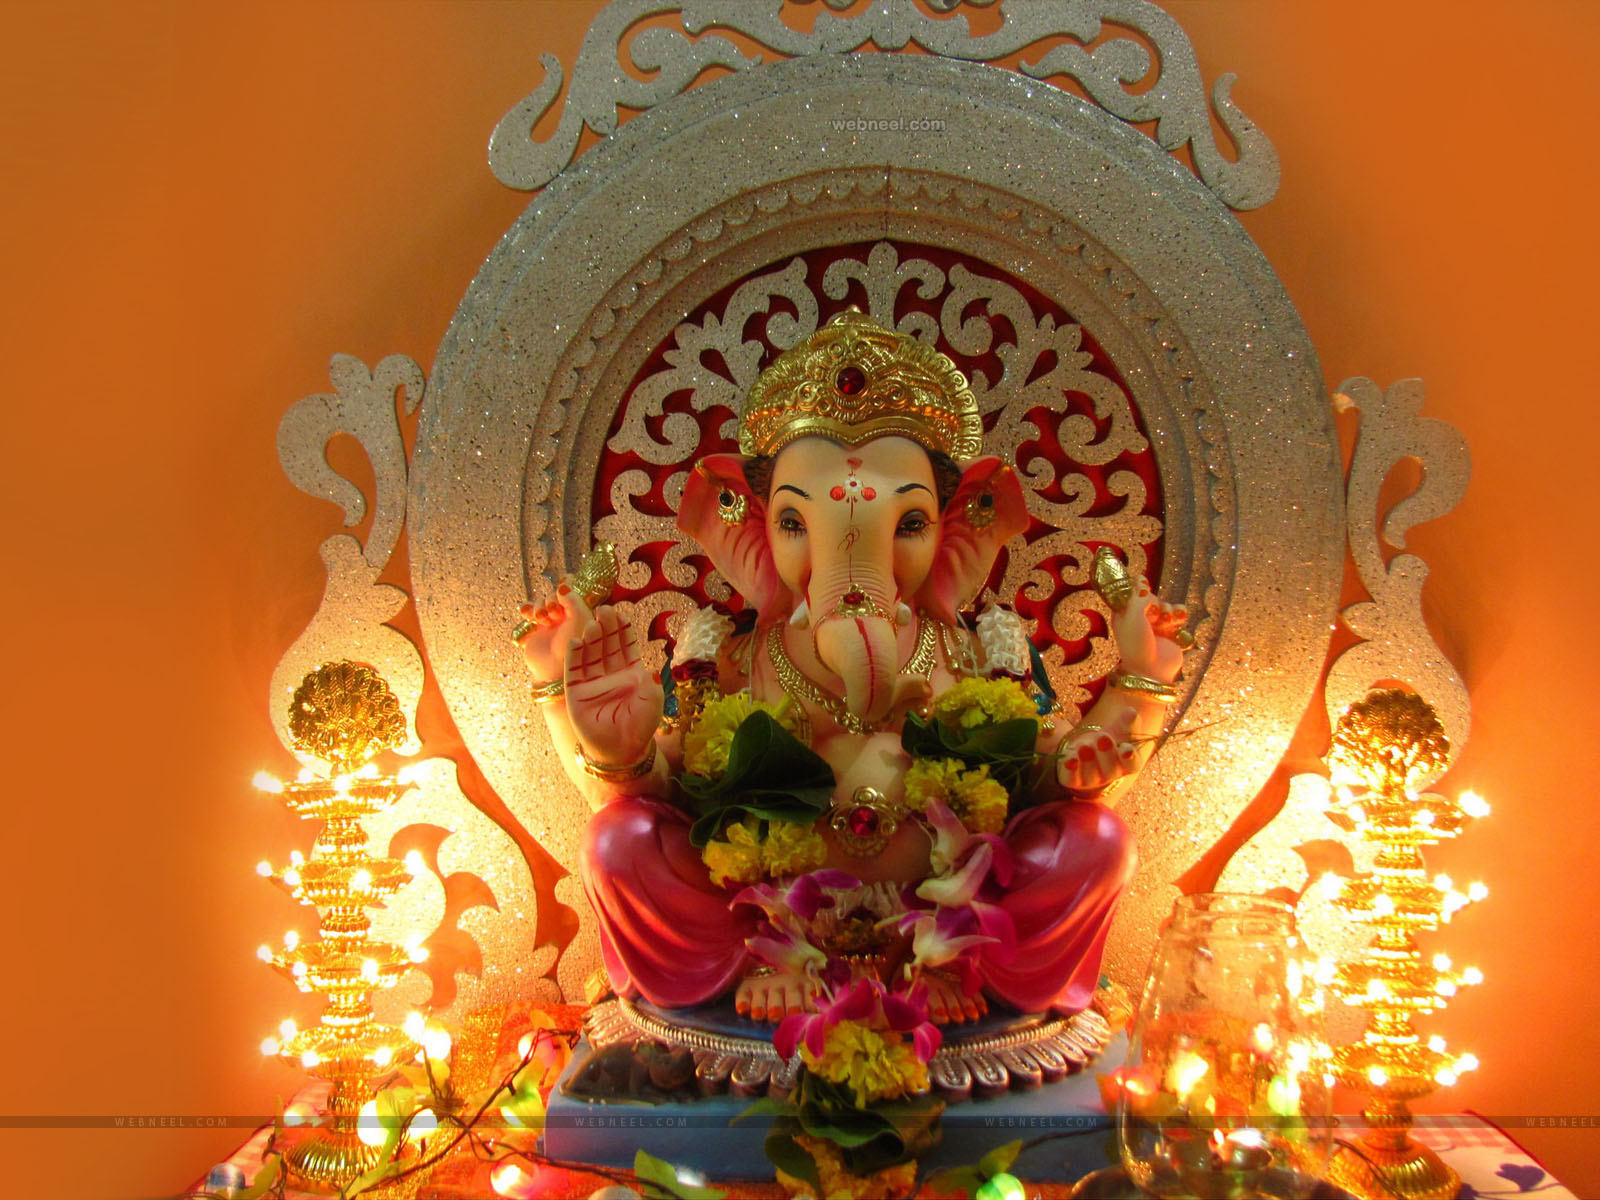 25 Ganesh Chaturthi Photo History And Wallpapers Vinayaka Chaturthi